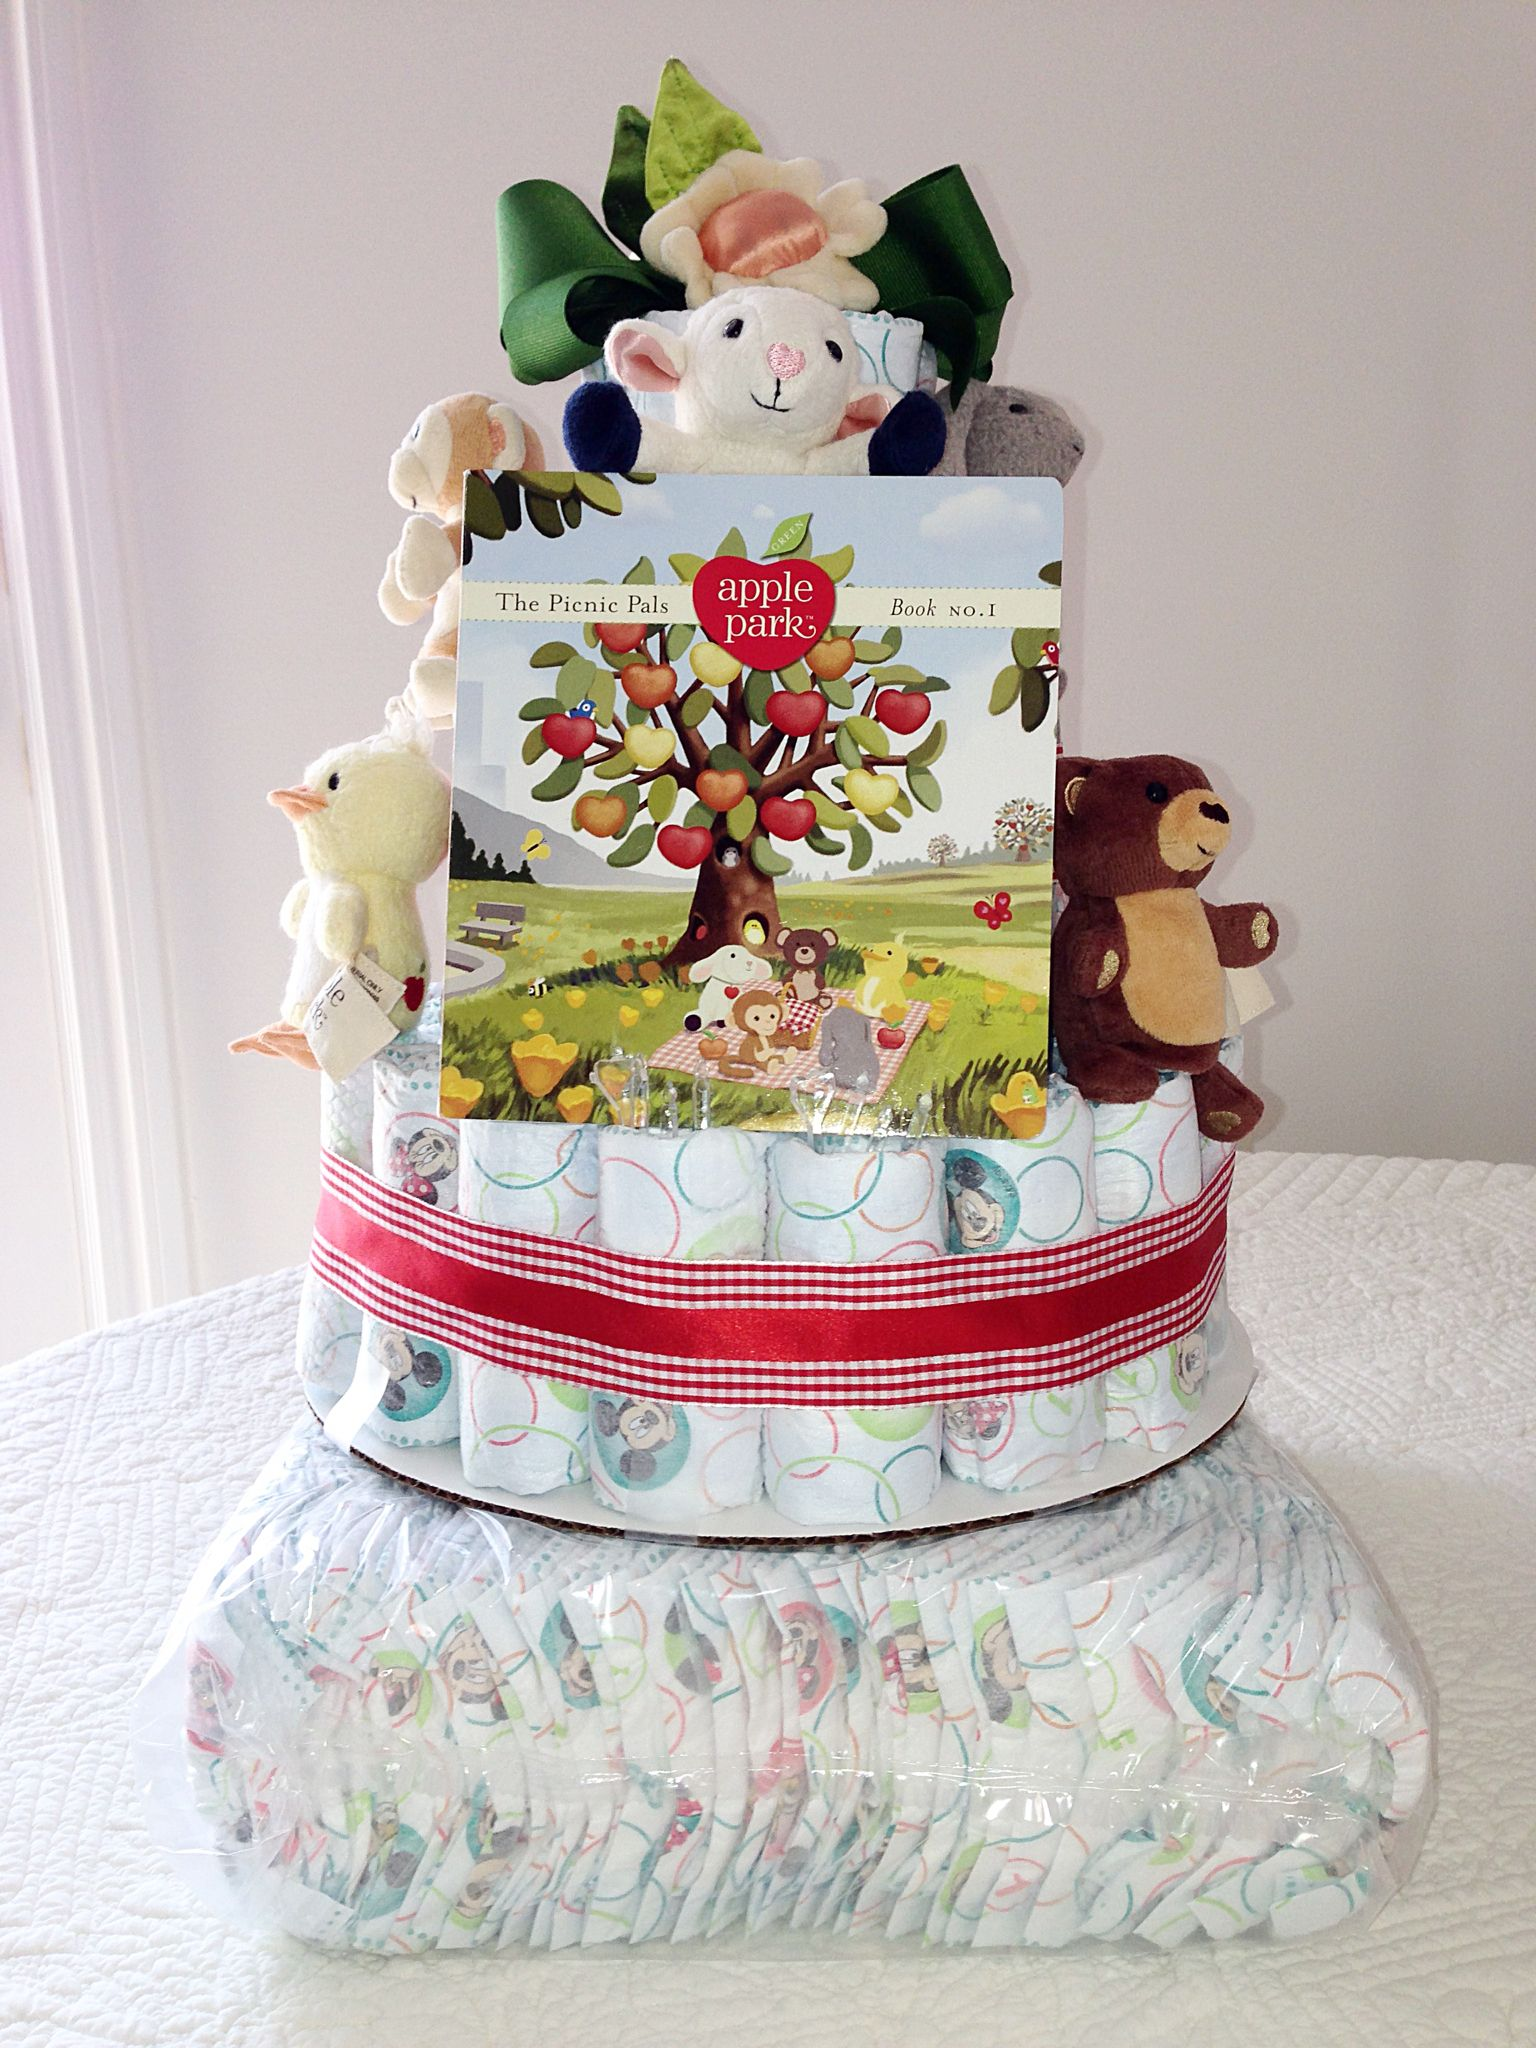 Look at this cute diaper cake! We heard it was the hit of the shower